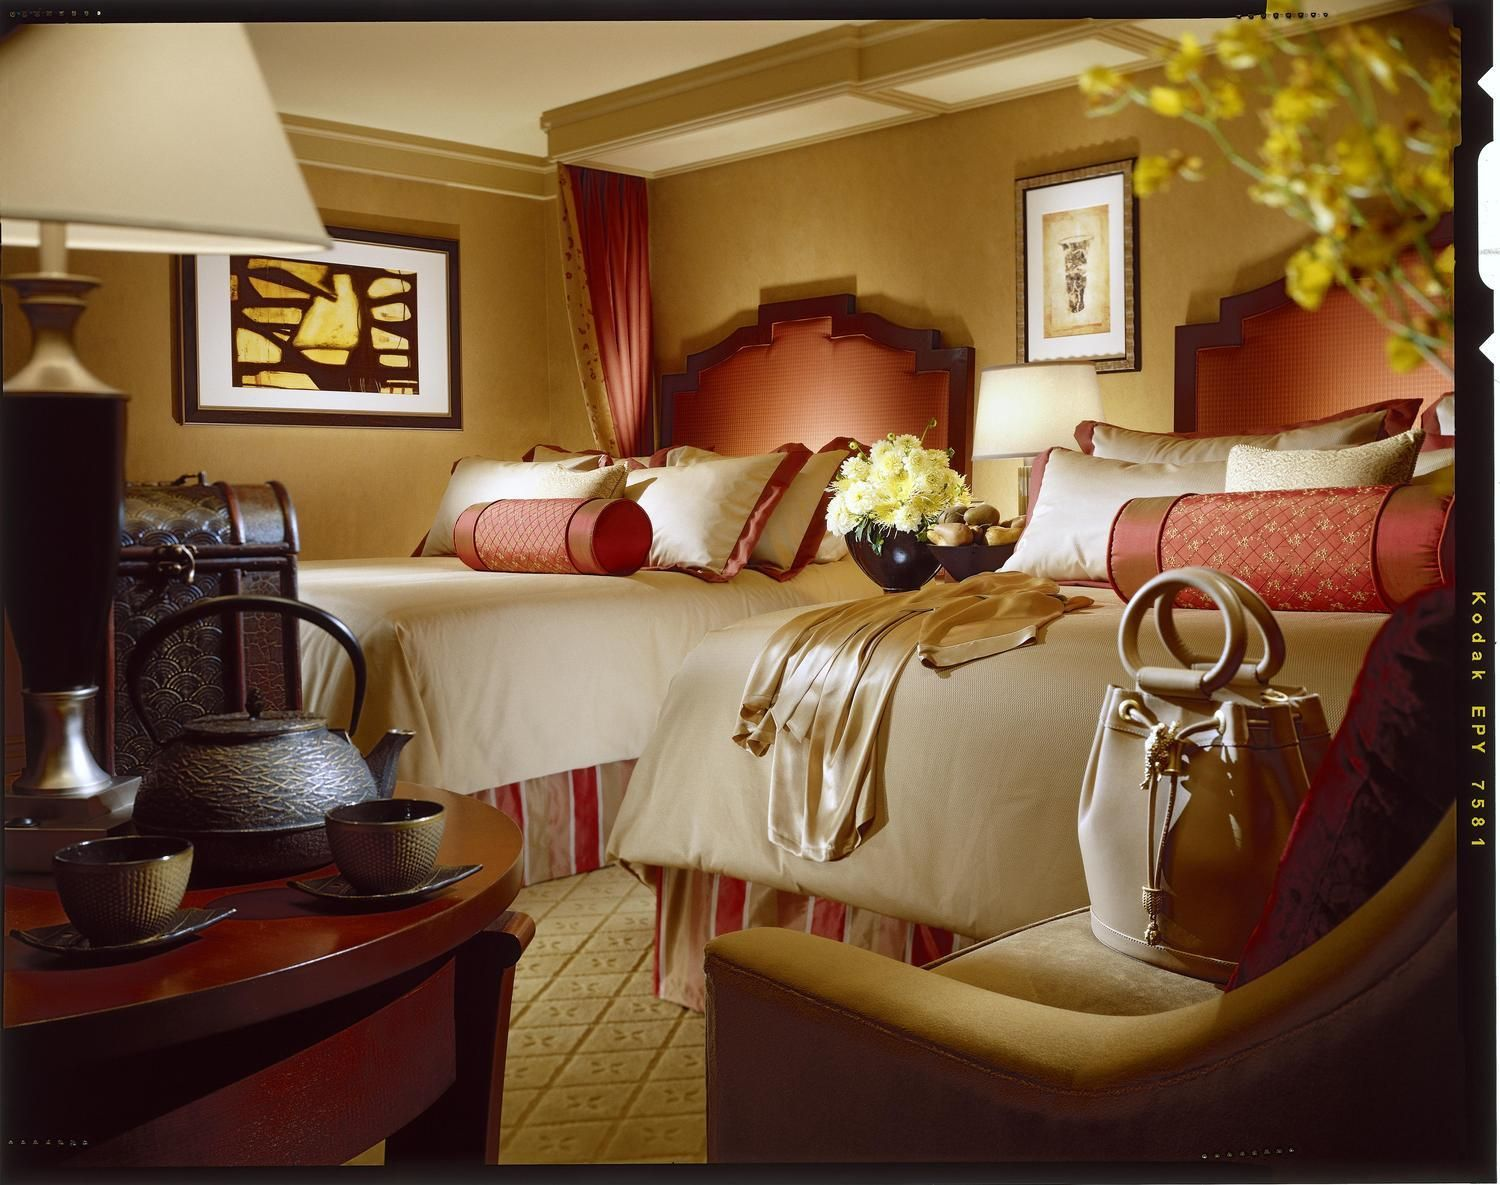 Pin by StaciaVegas on Hotel Inspired bring hotel ideas